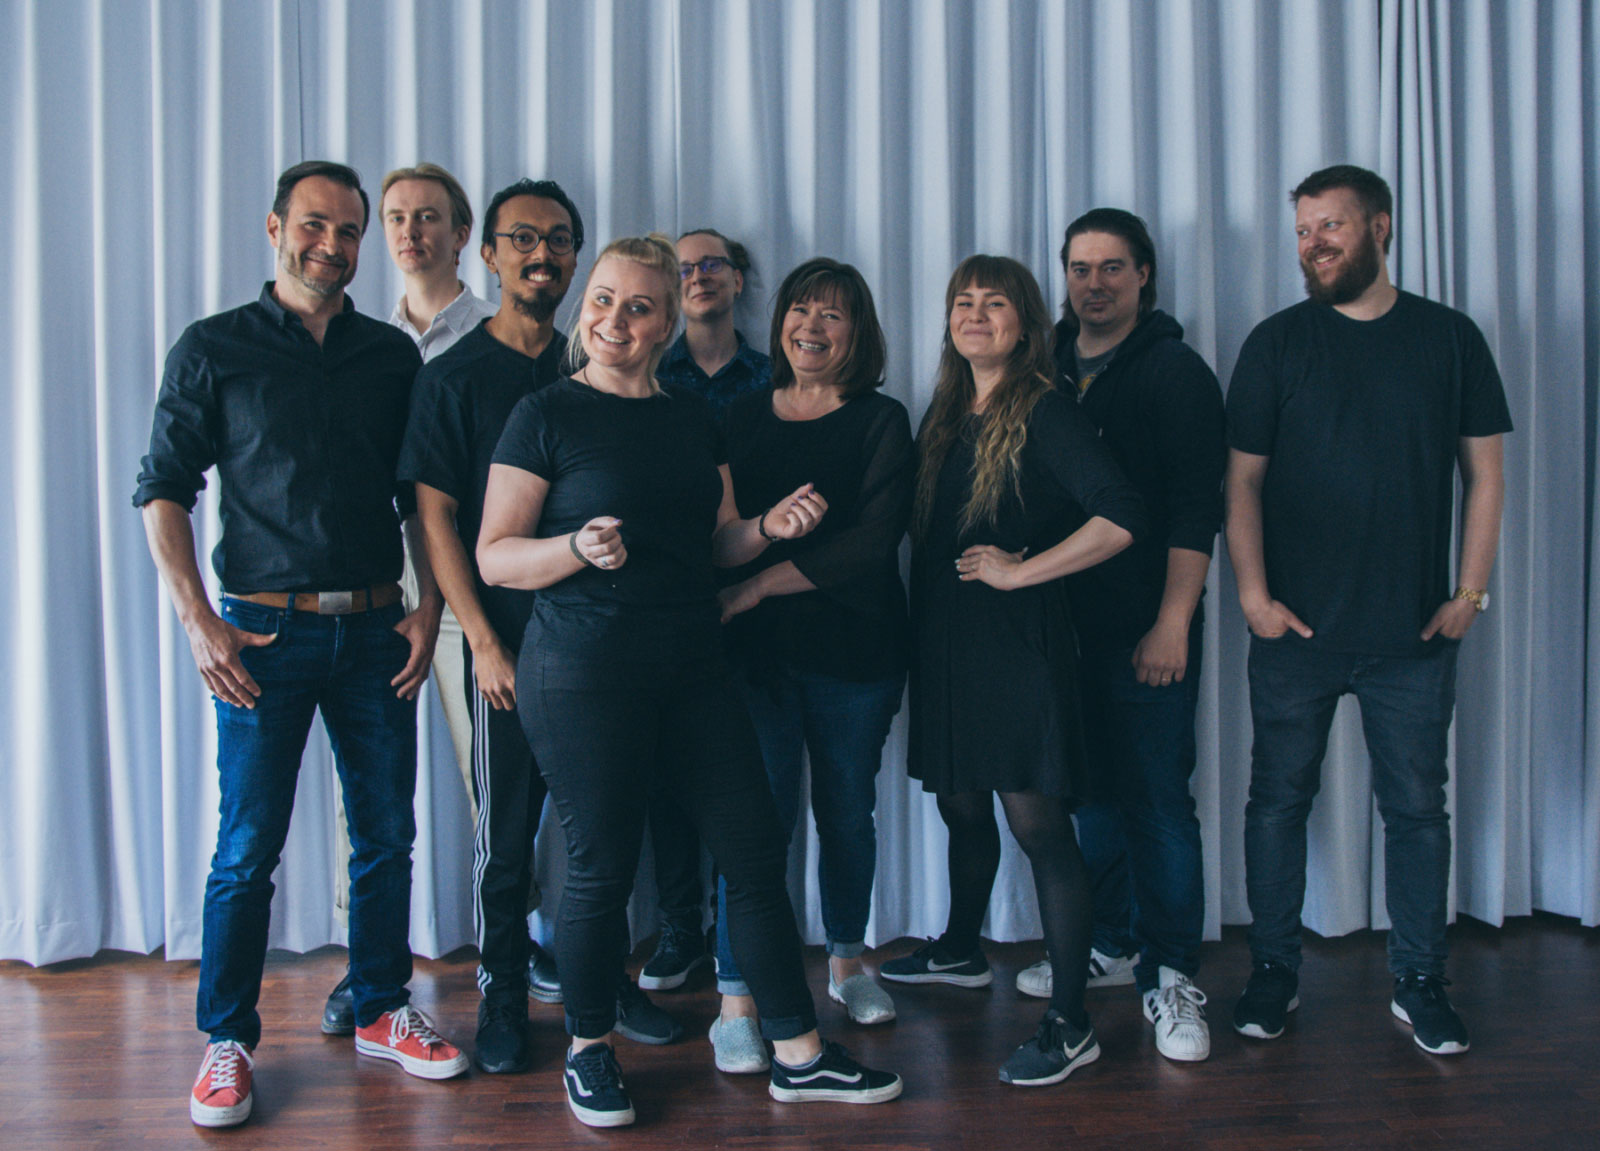 Nine members of the Helsinki XR Center team are standing in front of blue curtain, smiling.